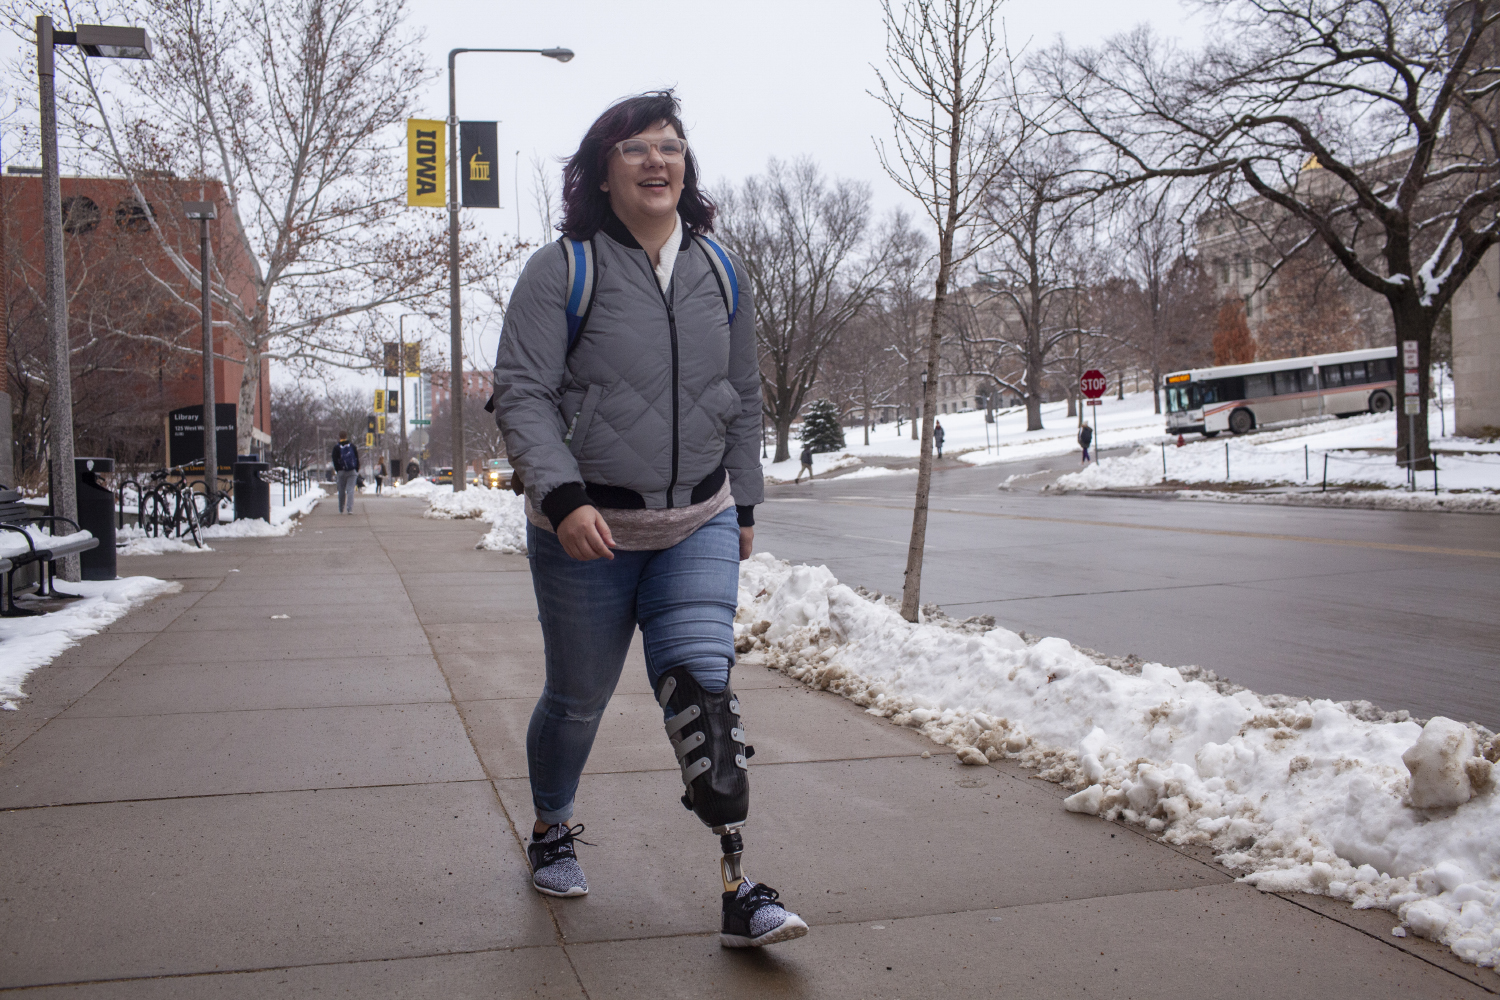 UI senior Erica Cole walks on campus on Tuesday, January 15, 2019. Cole started a business called No Limbits which creates colorful covers for amputees' prosthetics. Cole says that the covers have shifted the conversations she experiences about her prosthetic.